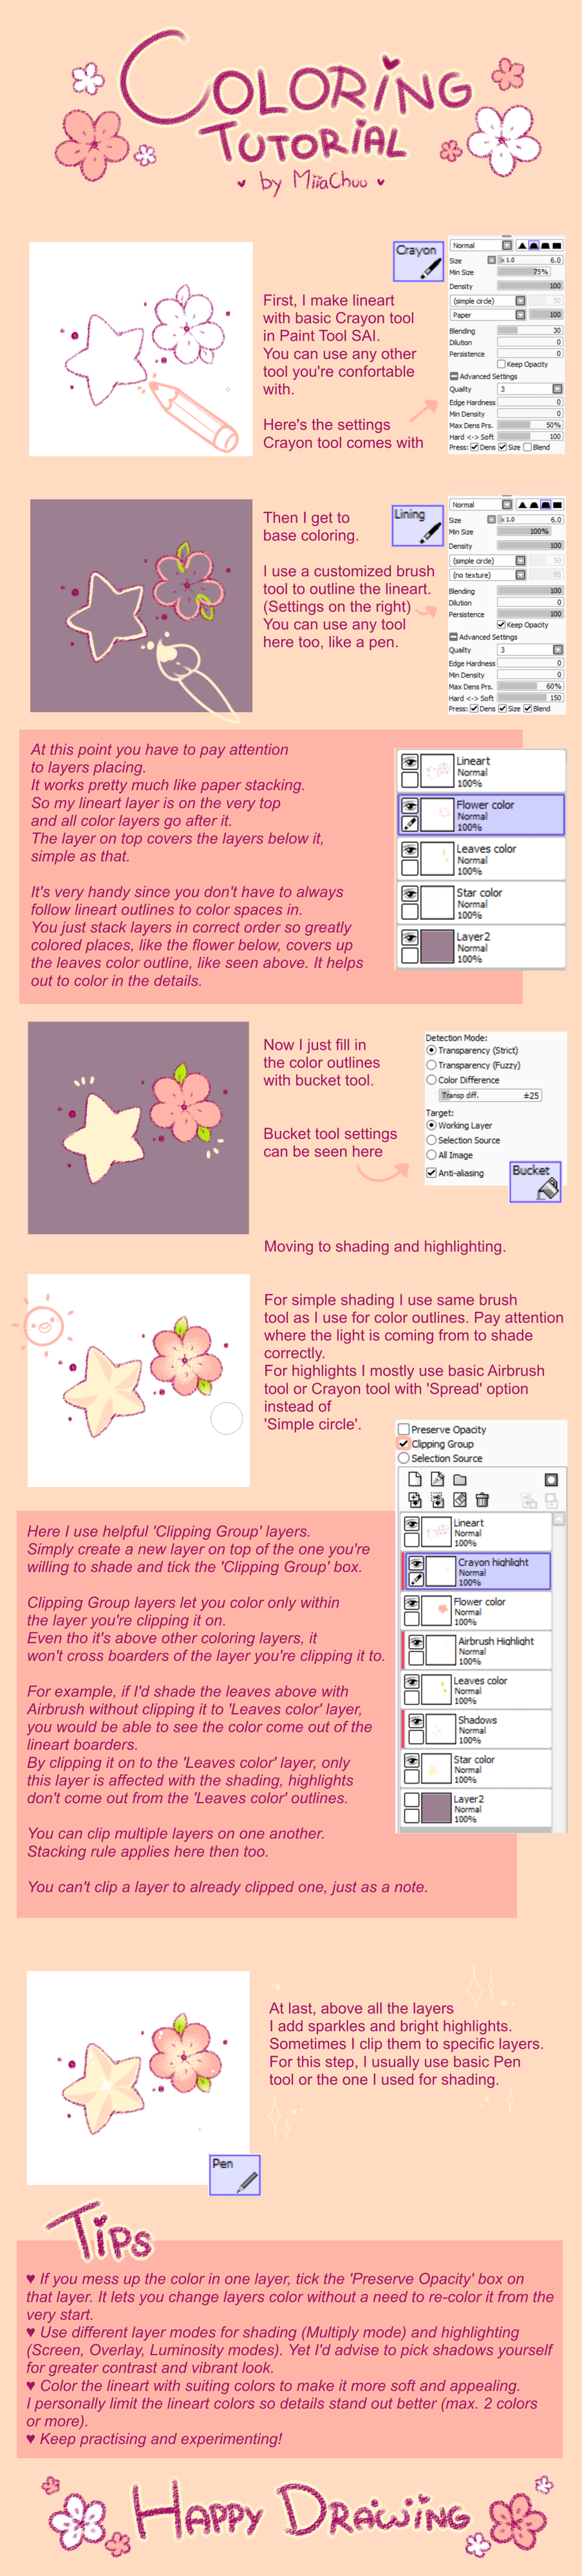 t coloring tutorial in paint tool sai by miiachuu on deviantart